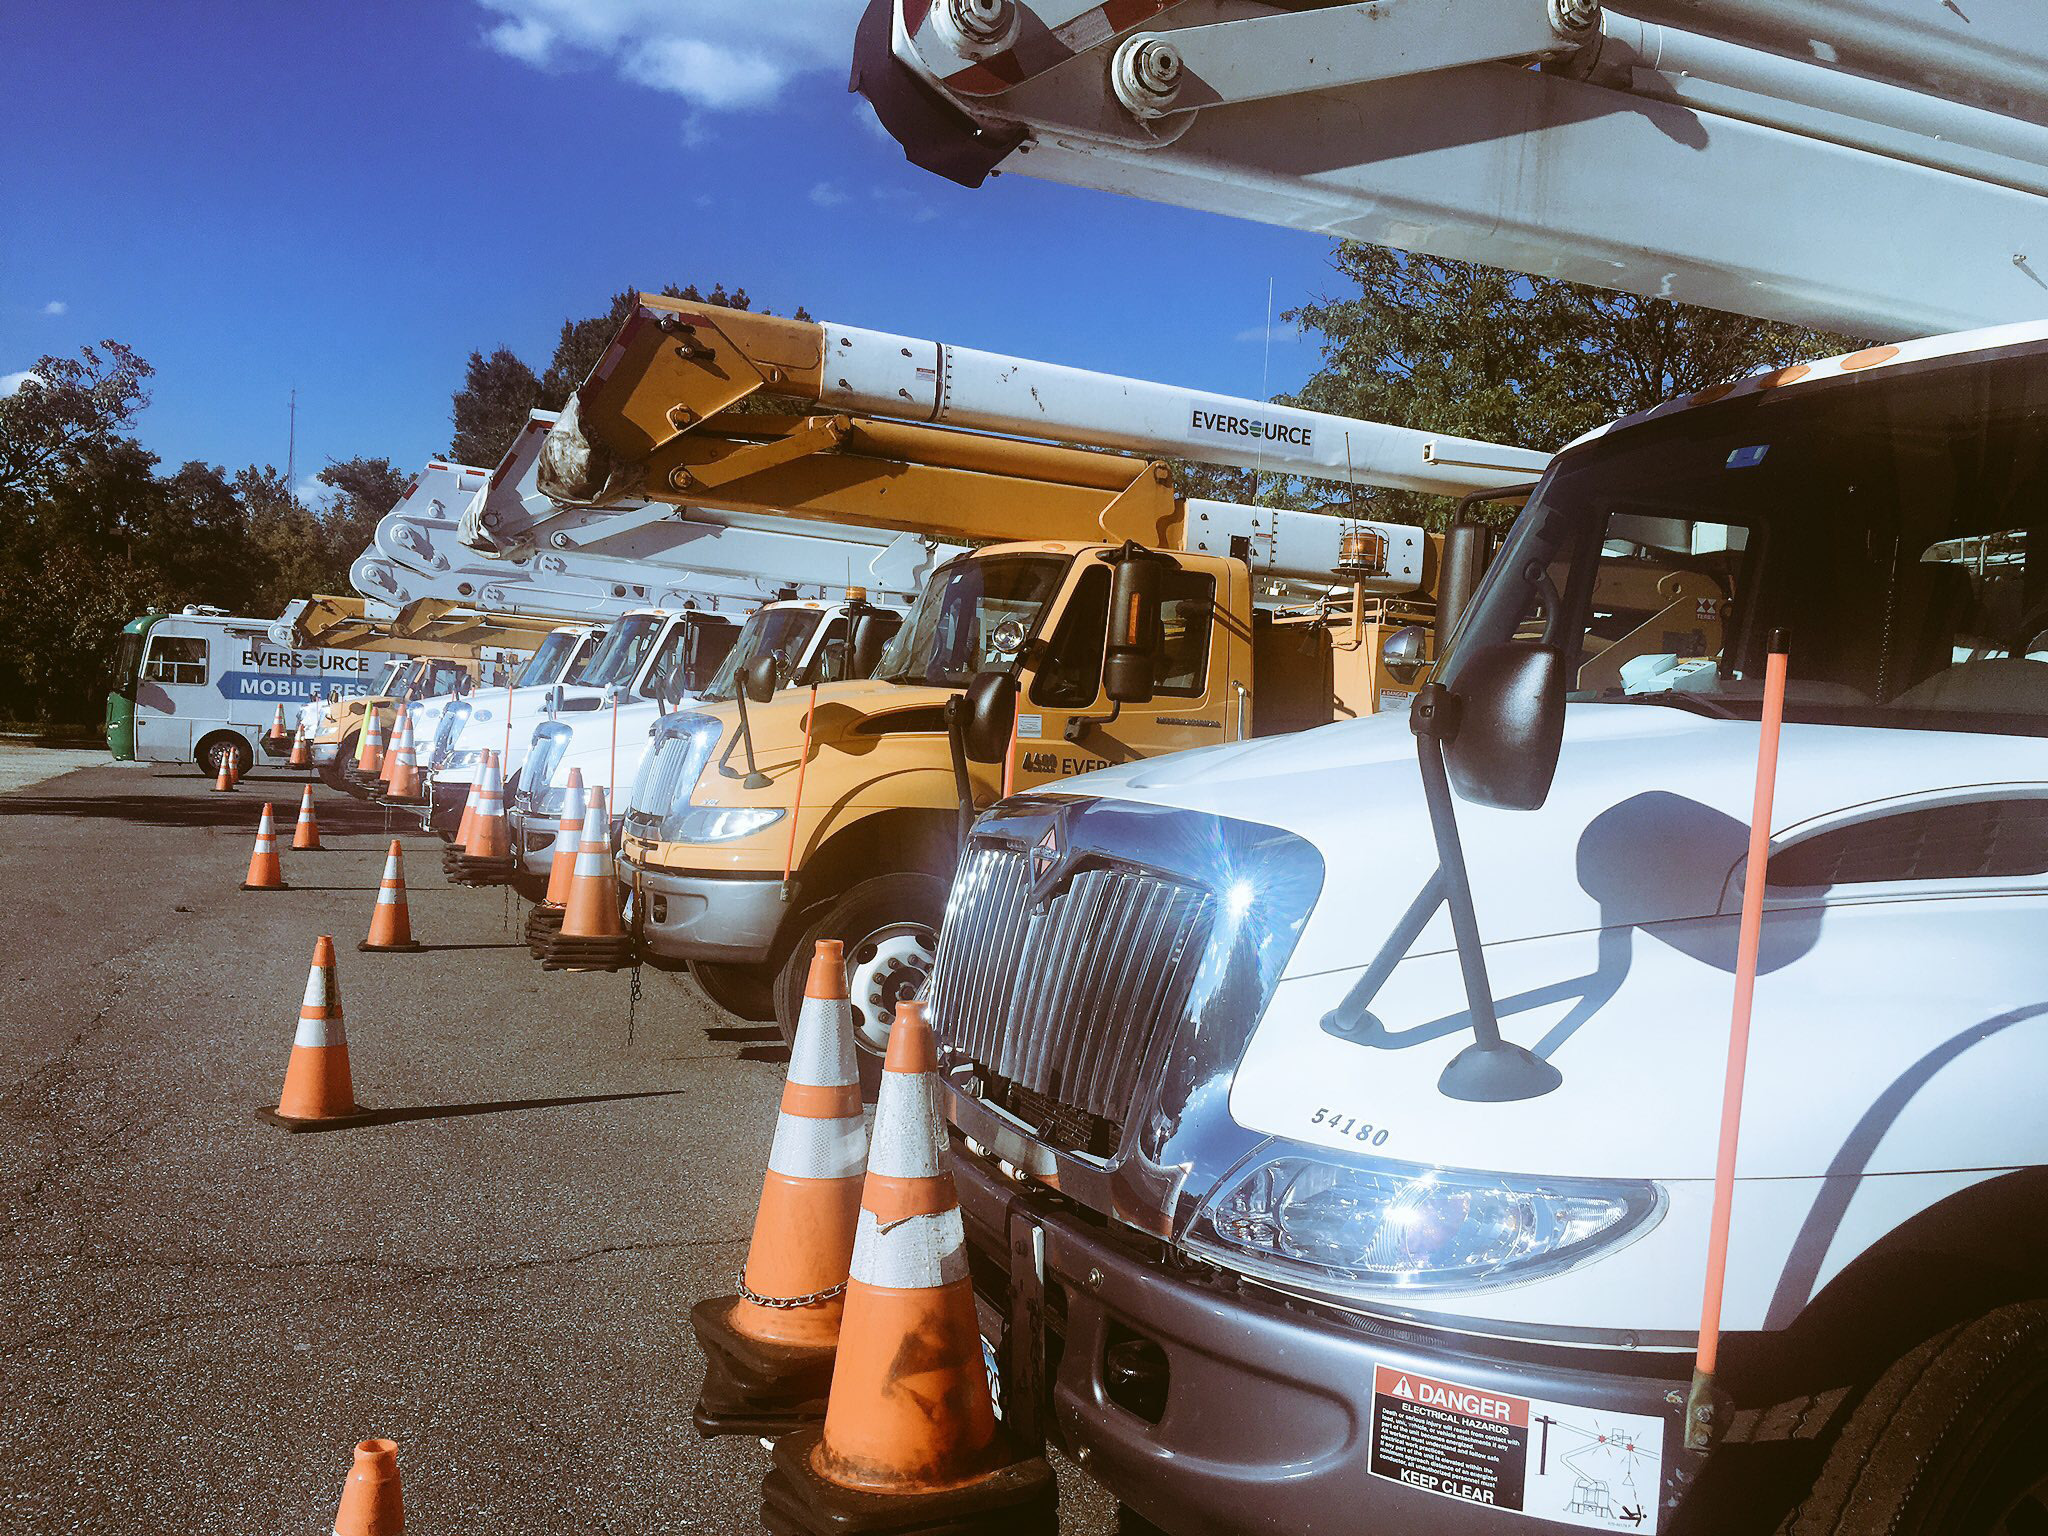 Line crews and staff from Eversource Energy in Connecticut headed south over the weekend with to help with Hurricane Irma recovery efforts. They'll be in Florida for up to two weeks. | Eversource Energy